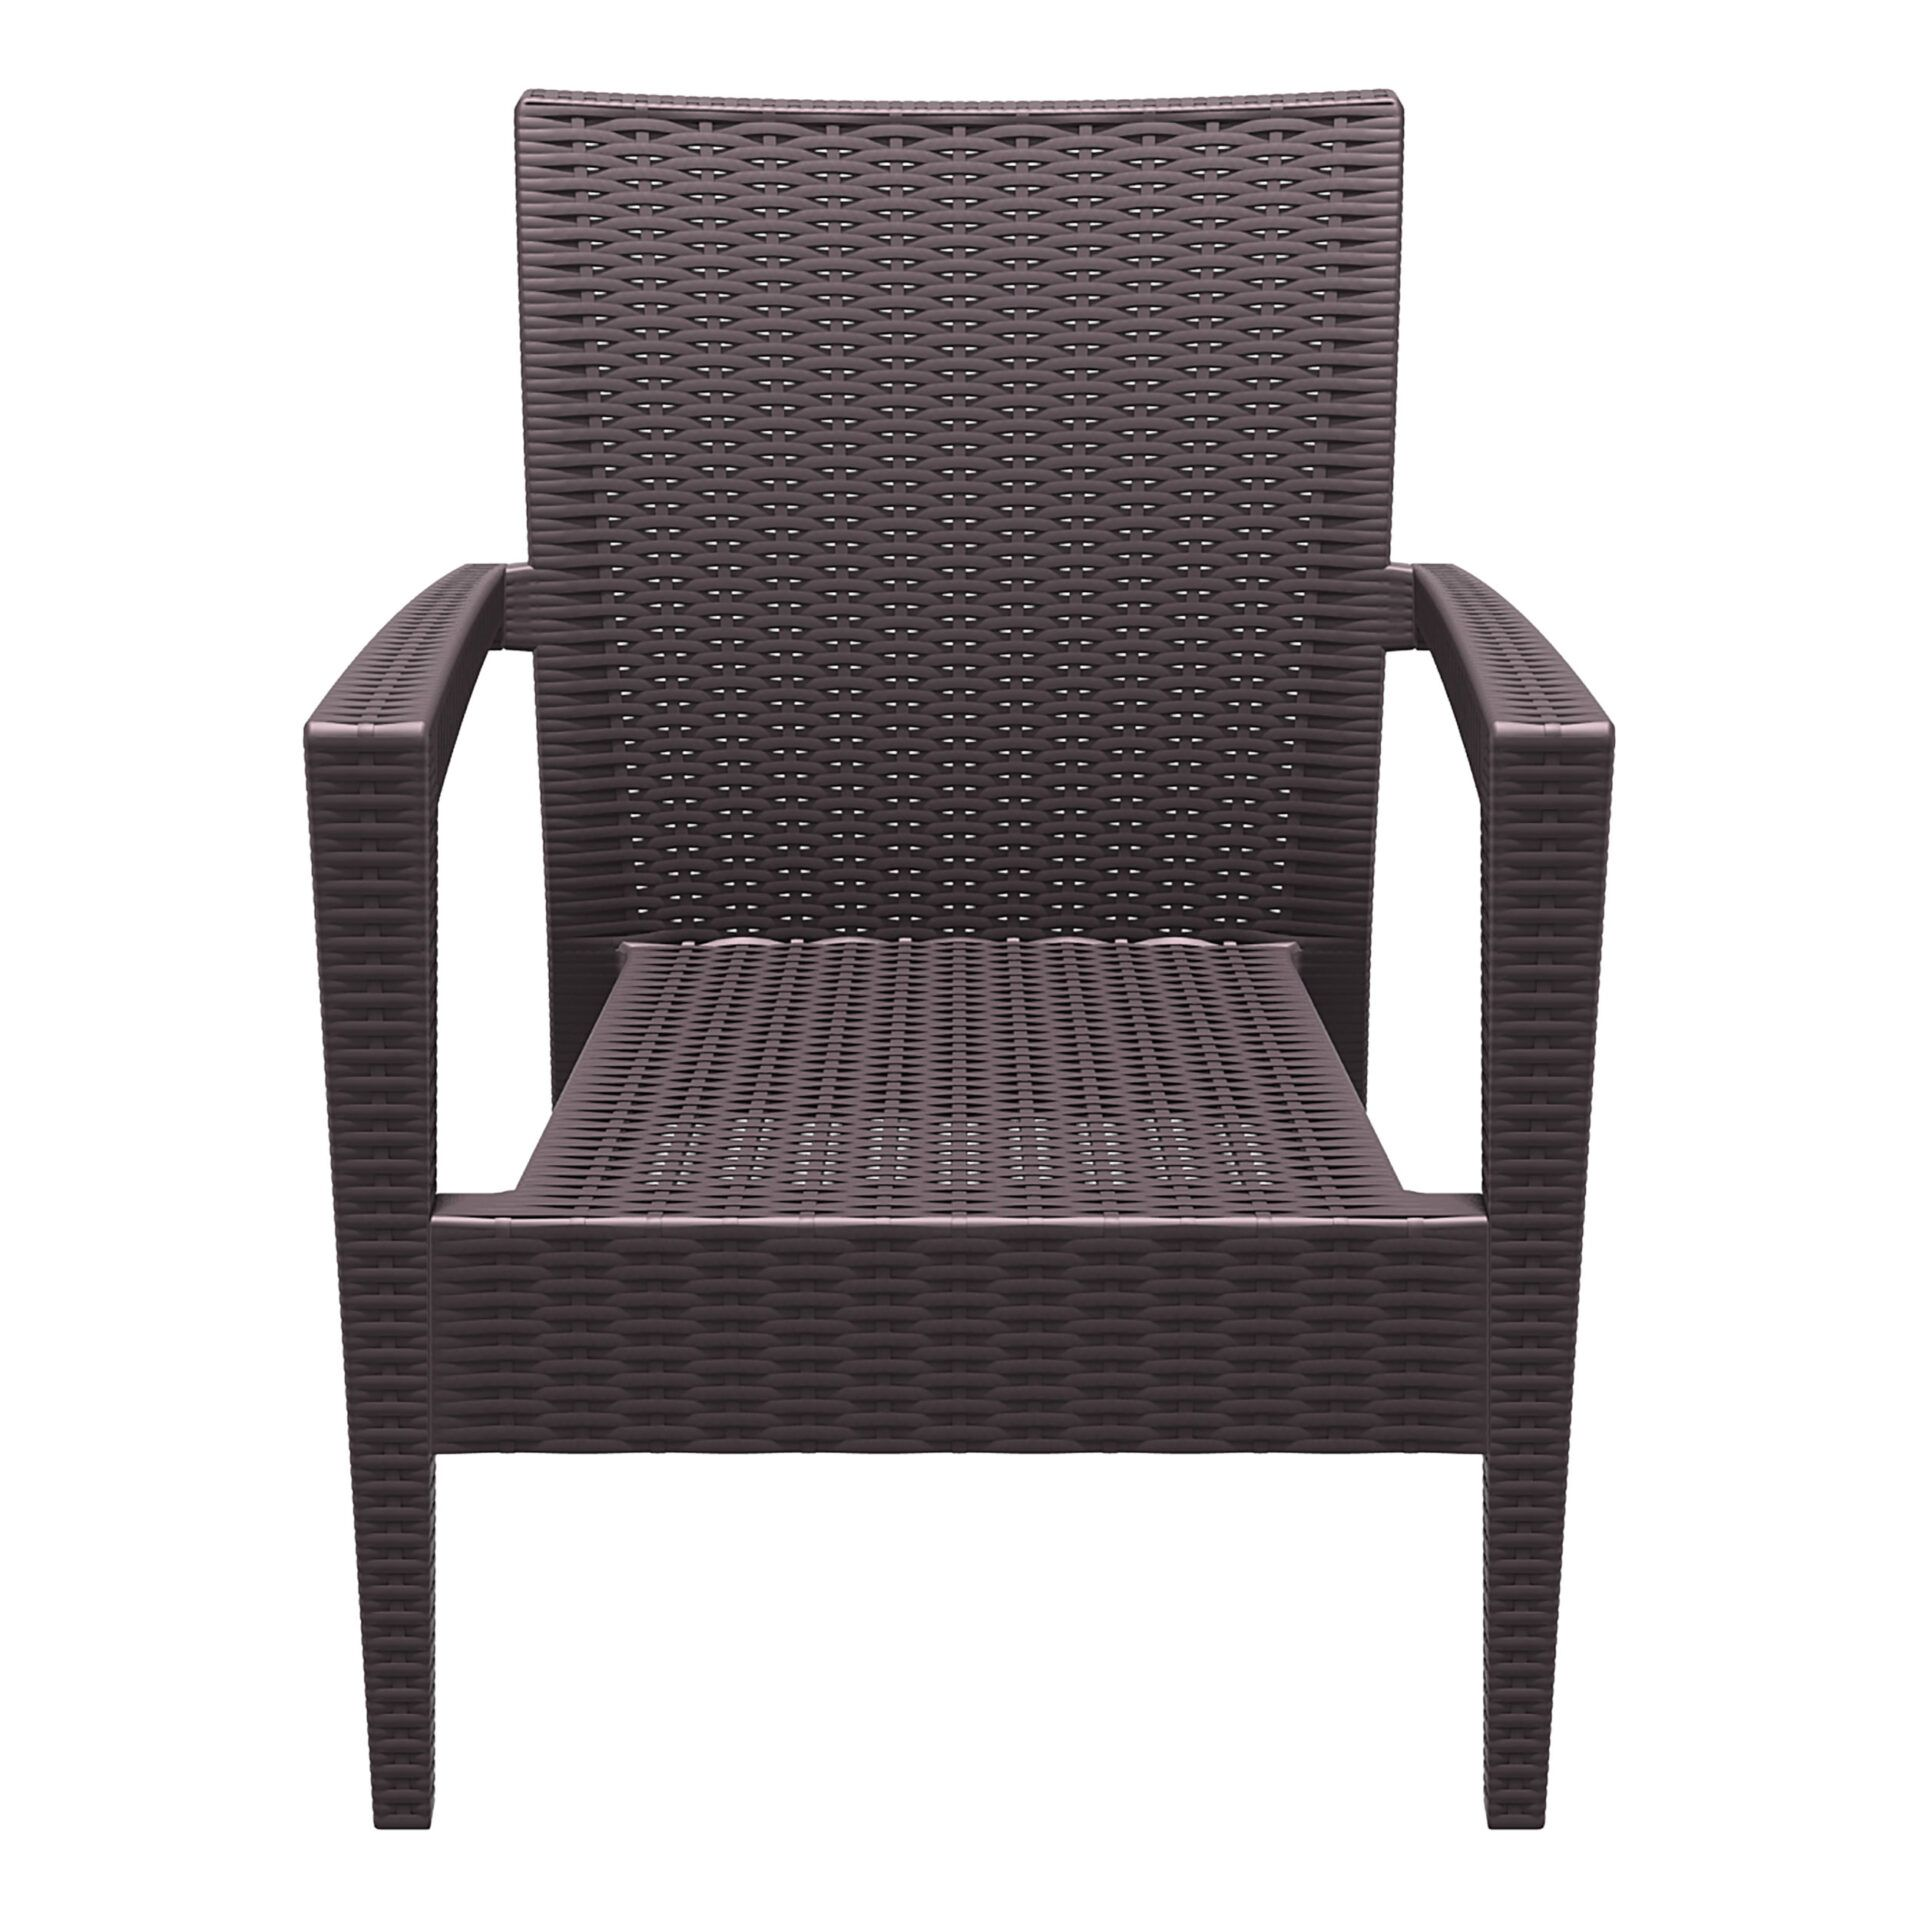 resin rattan miami tequila lounge armchair brown front